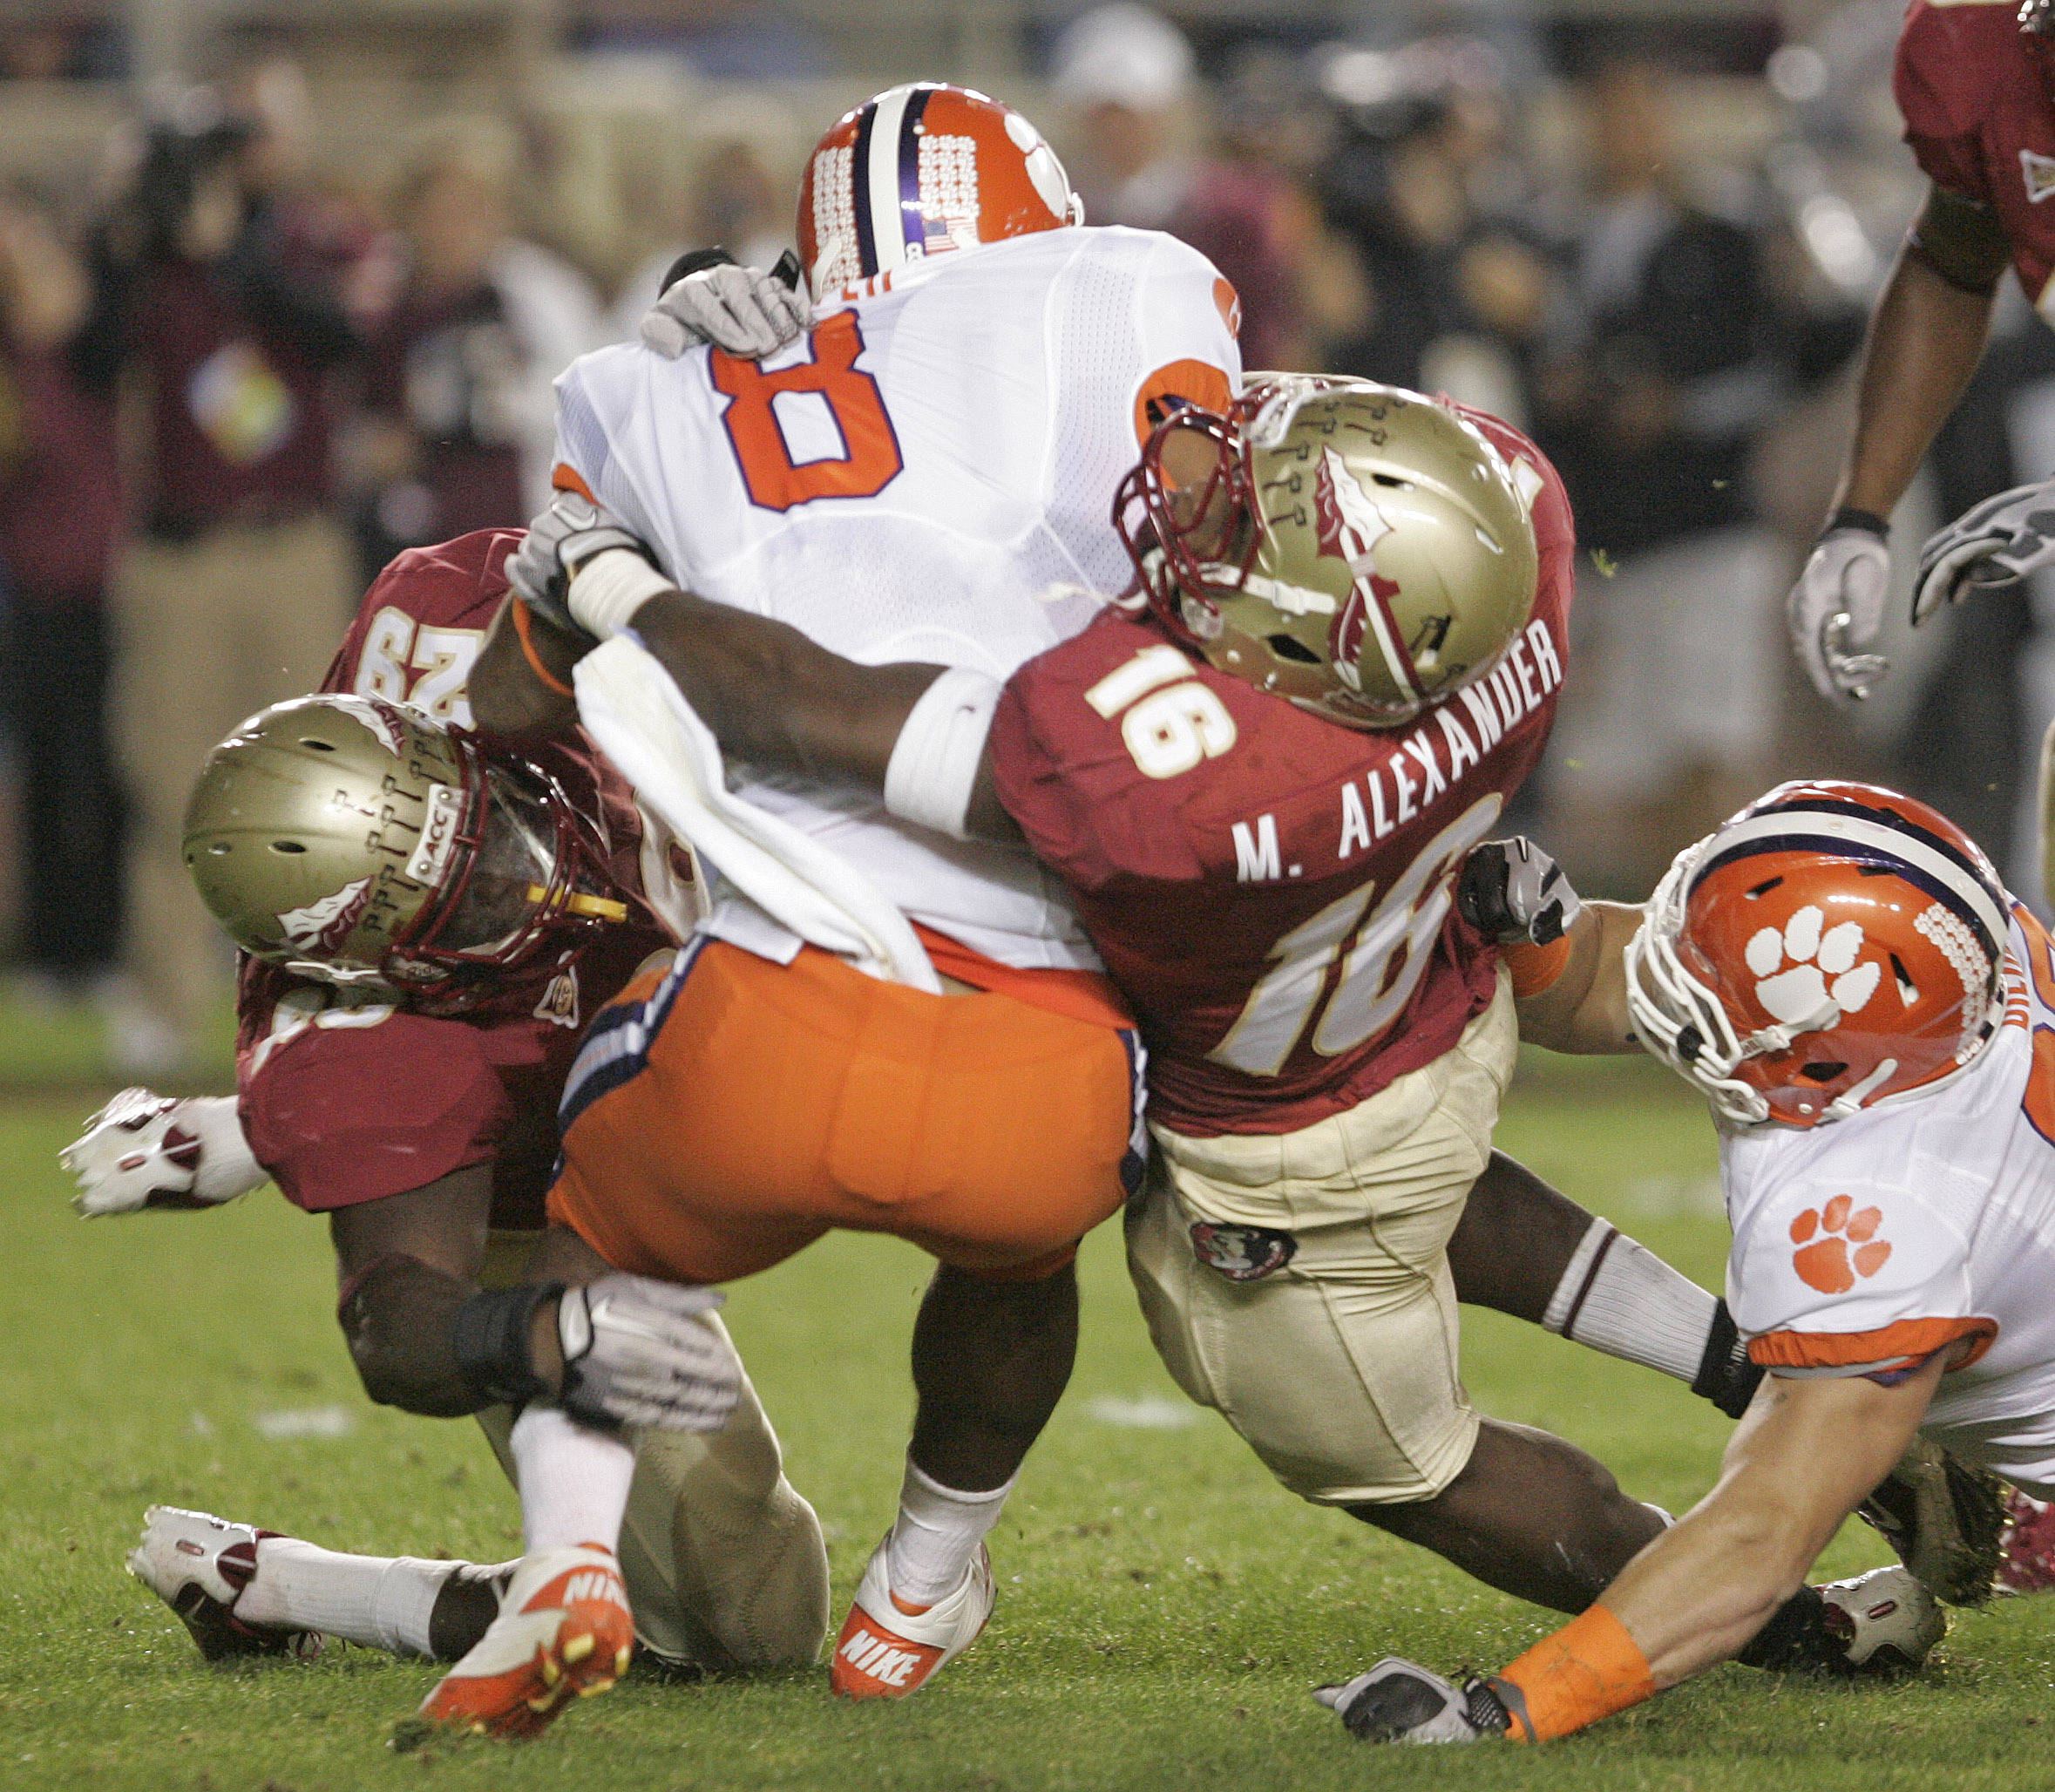 Florida State's Mister Alexander, right and Kendall Smith stop Clemson's Jamie Harper for a short gain in the first quarter of an NCAA college football game on Saturday, Nov. 13, 2010 in Tallahassee, Fla.(AP Photo/Steve Cannon)